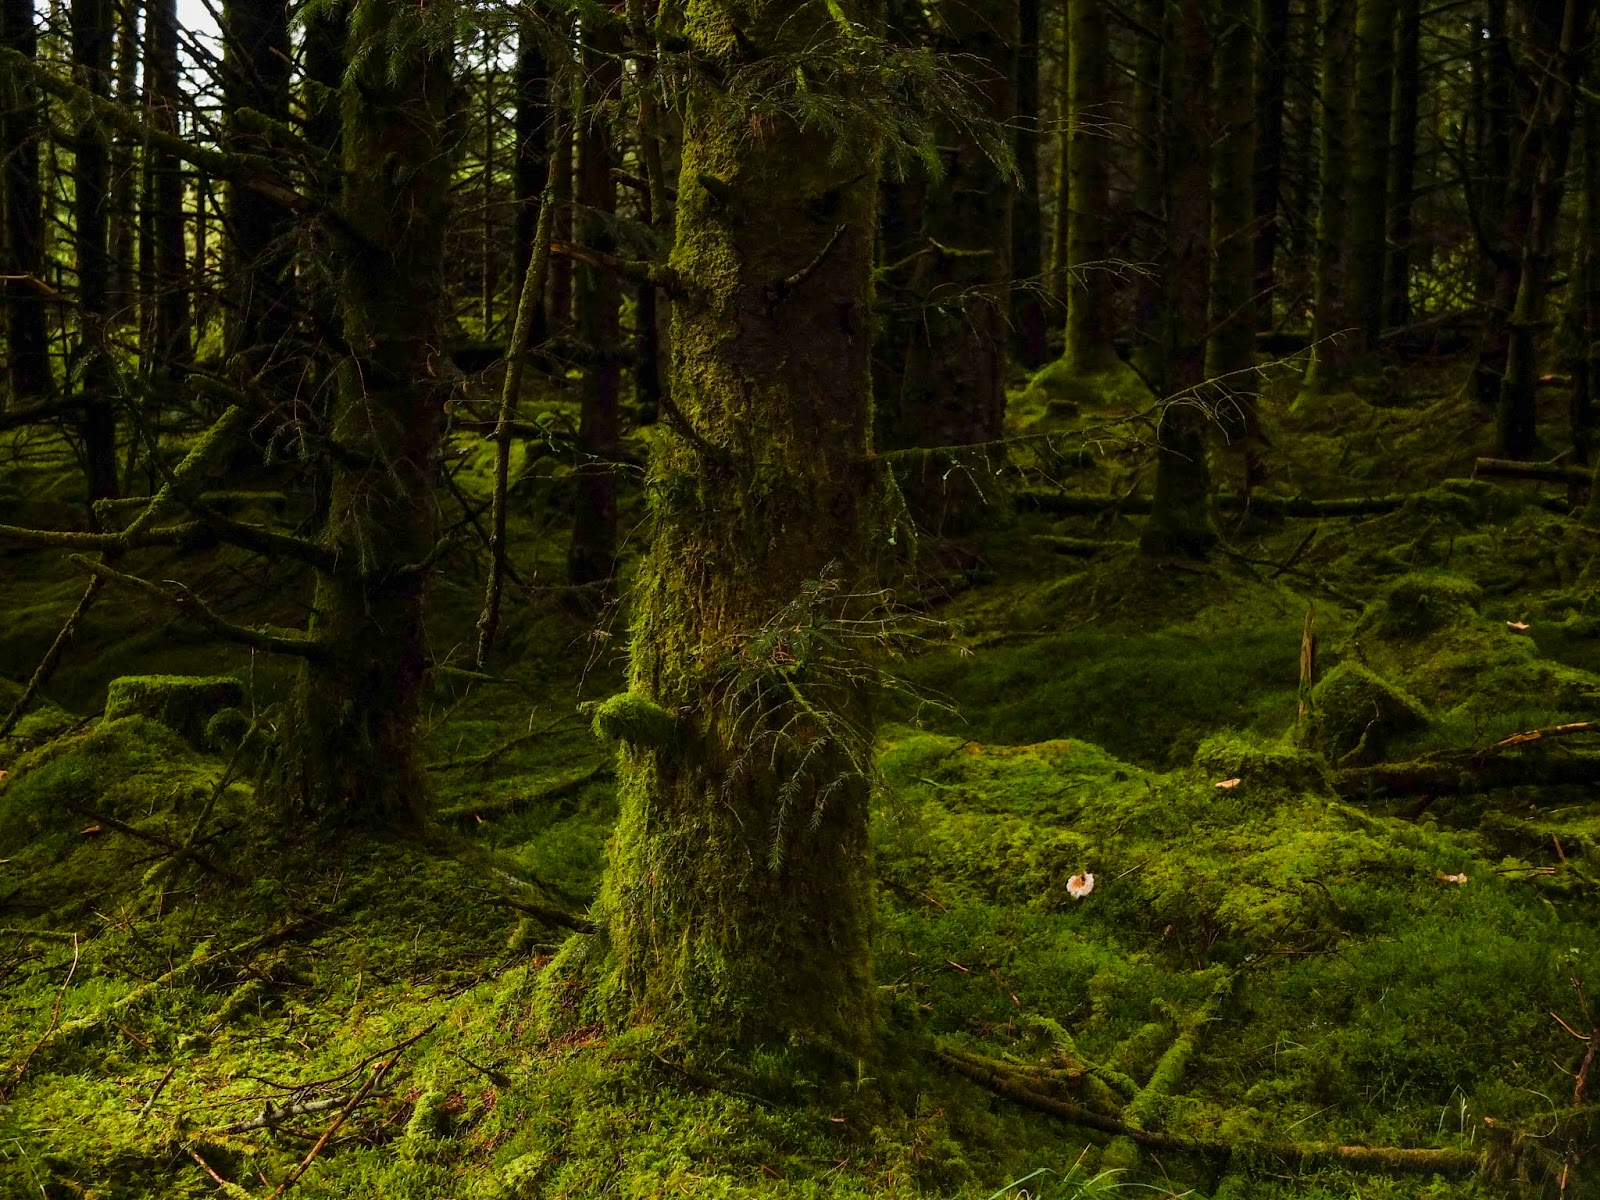 Moss covered tree trunks inside a forest.